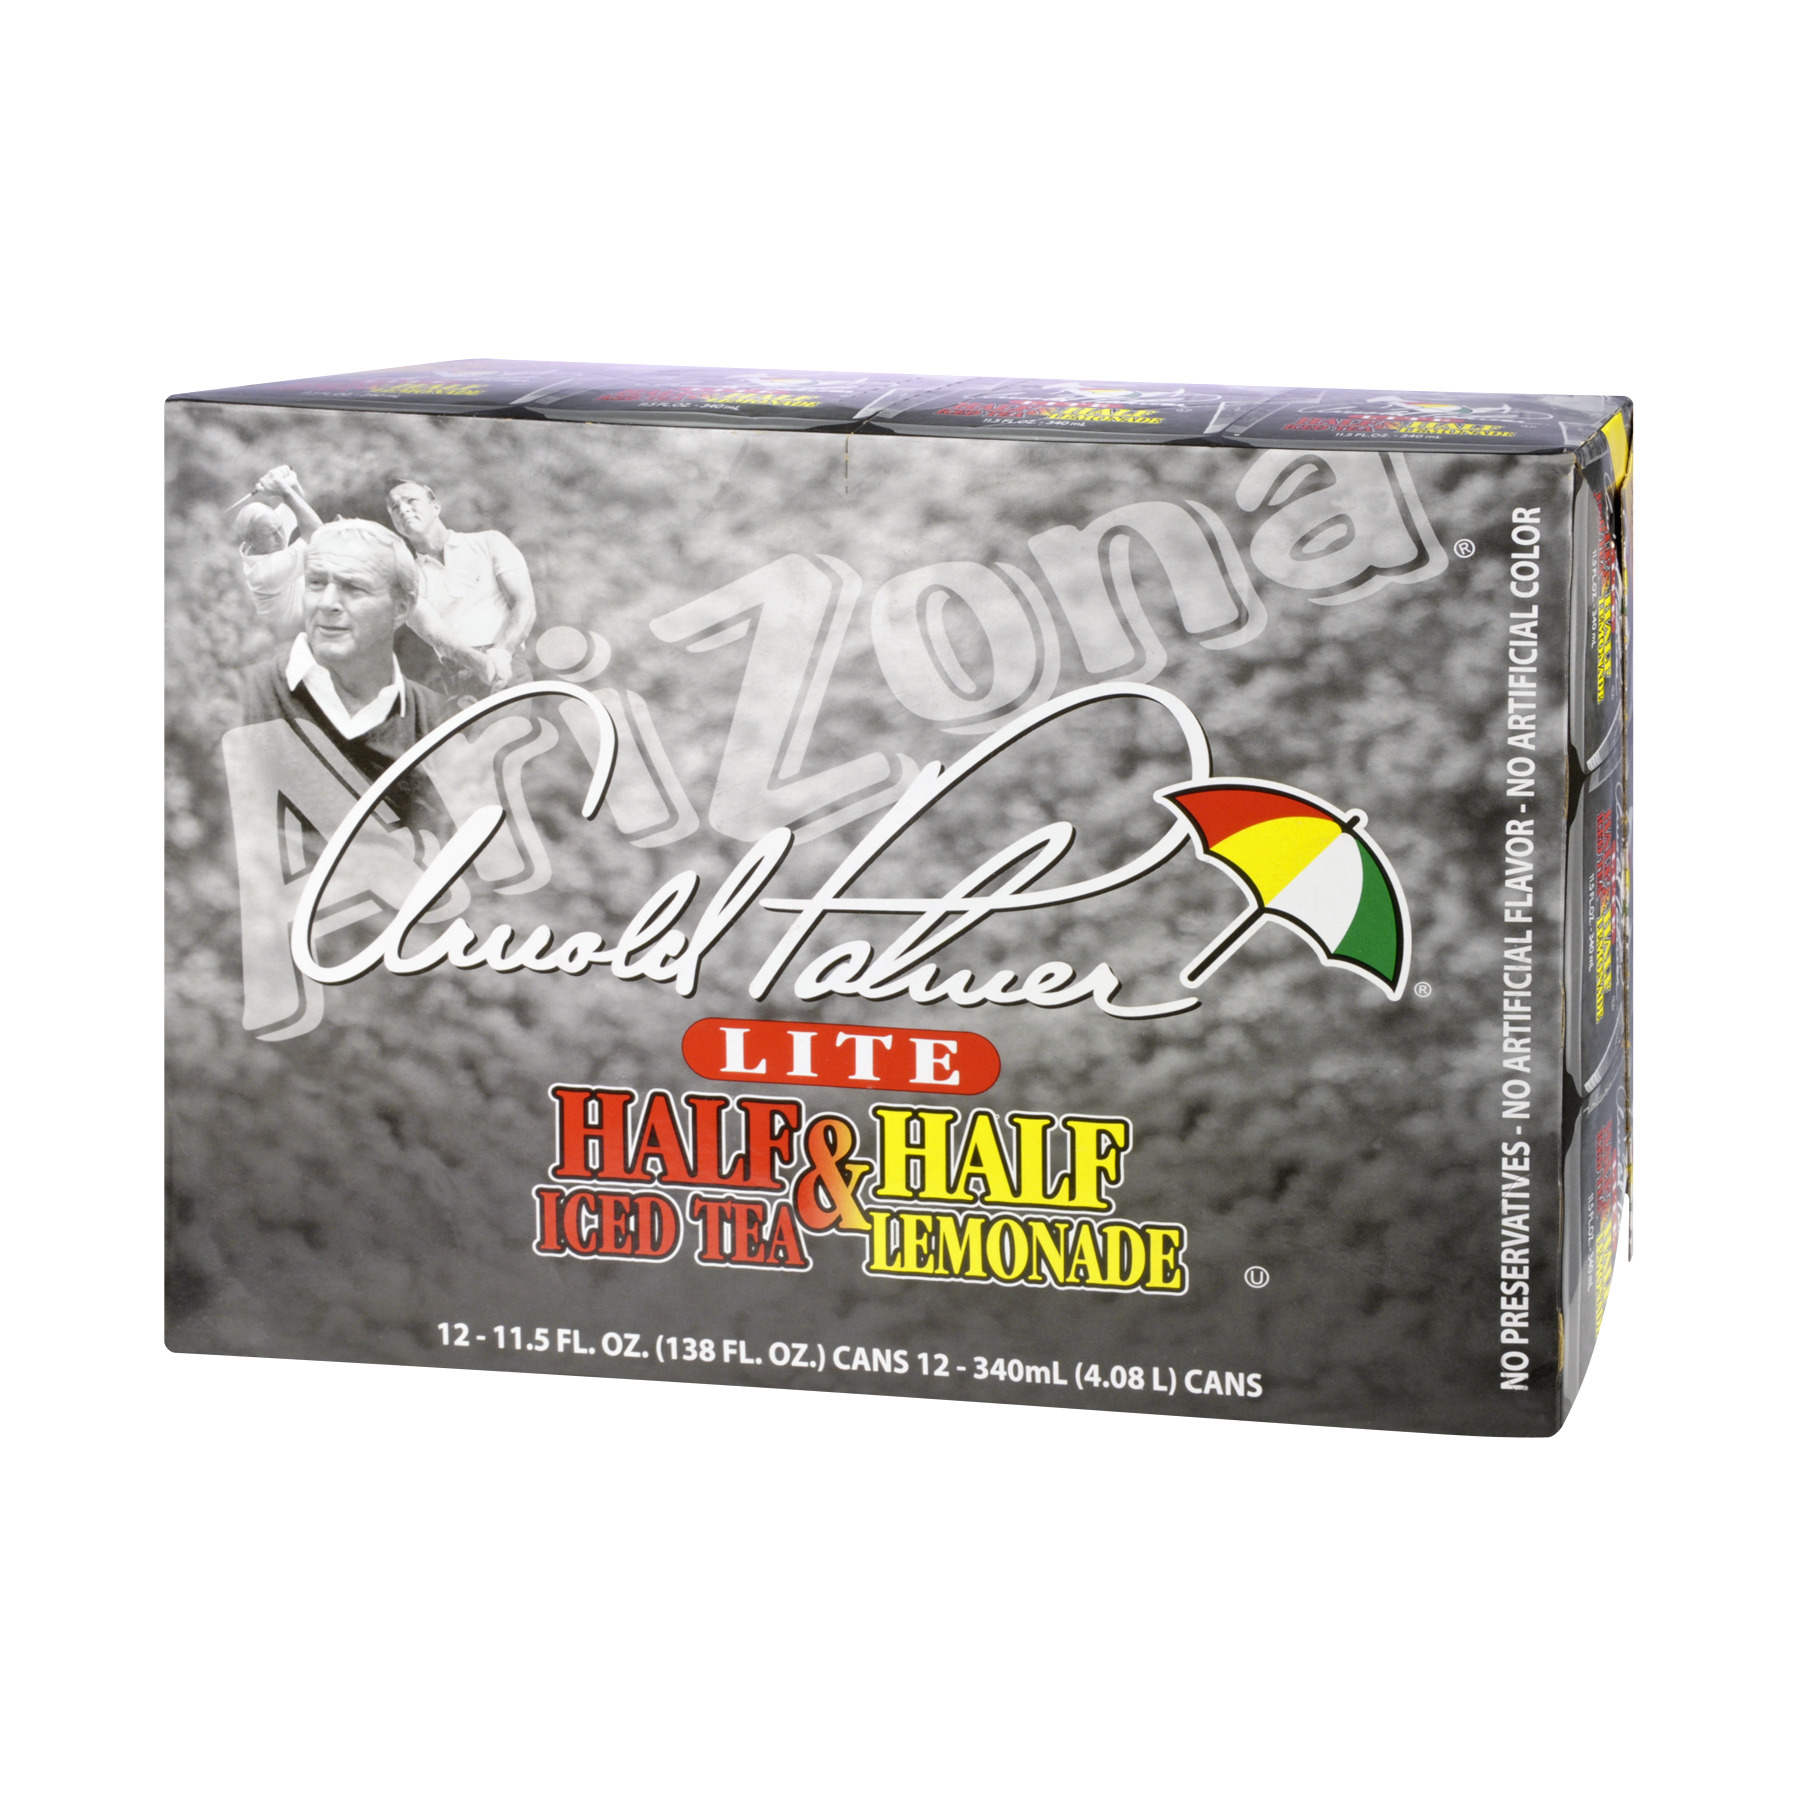 (2 Pack) Arizona Arnold Palmer Half & Half Iced Tea Lemonade, 11.5 Fl Oz (Pack of 12)